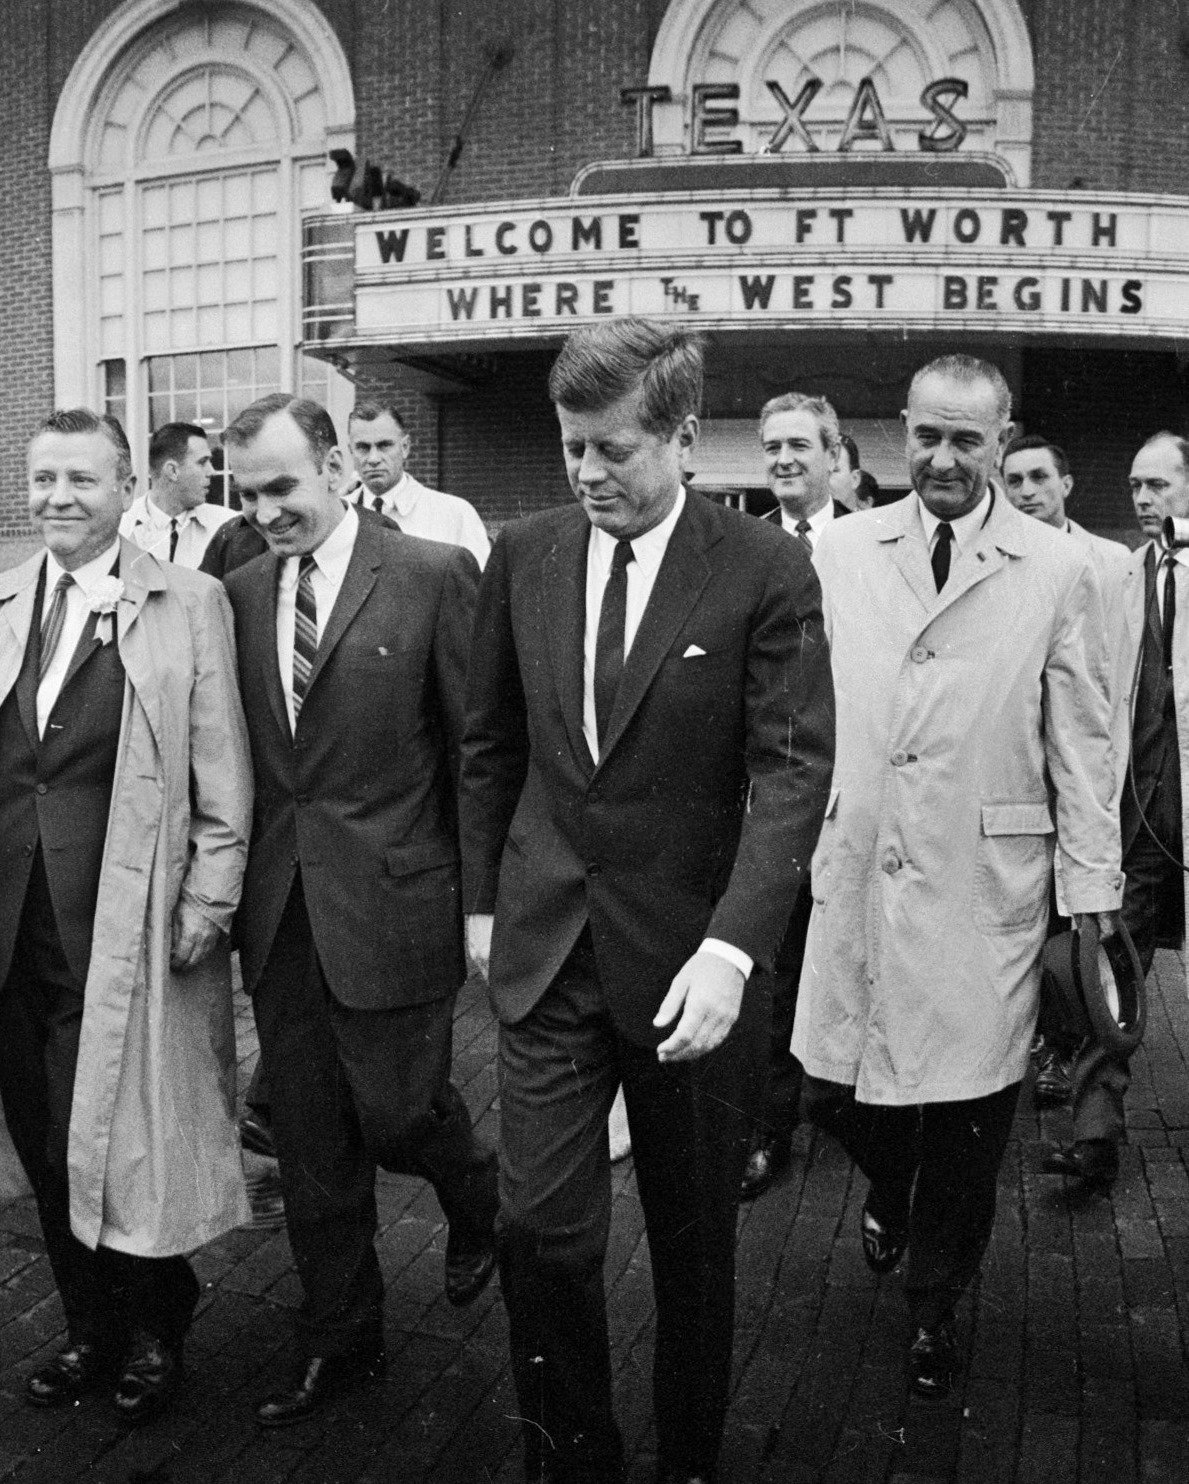 PRESIDENT JOHN F. KENNEDY LEAVES THE HOTEL TEXAS IN FORT WORTH 11/22/63 8X10 PHOTO (BB-263)